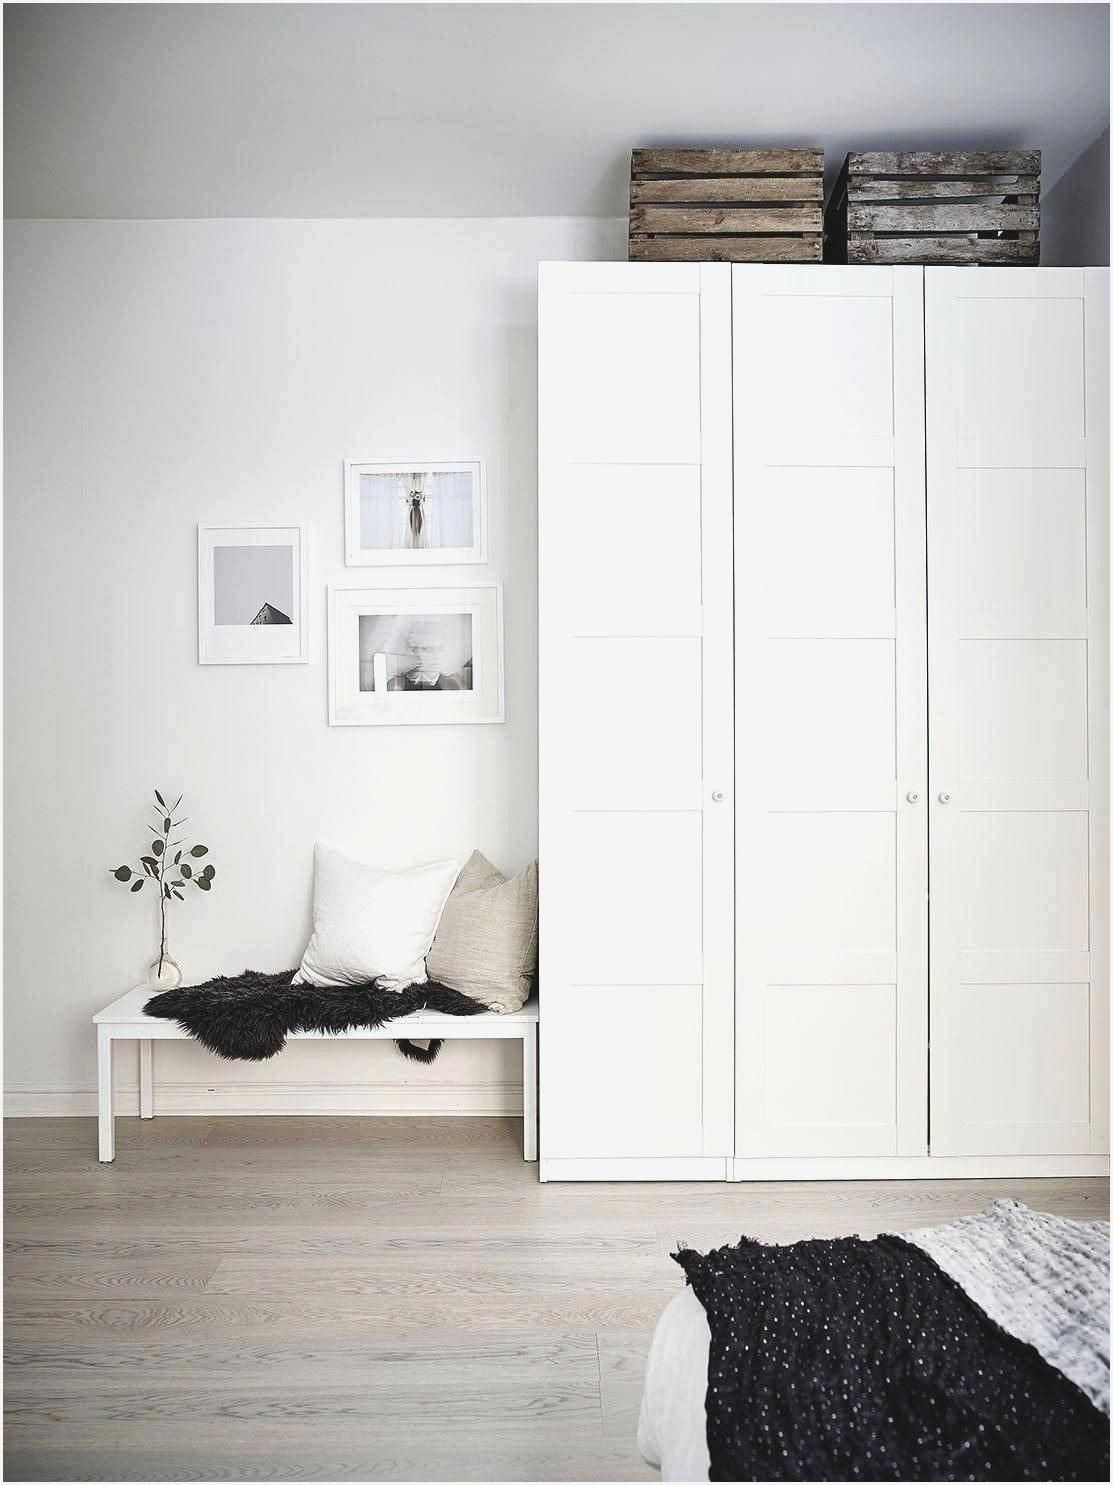 51 Schlafzimmer Schranke Ideen In 2020 Ikea Bedroom Storage